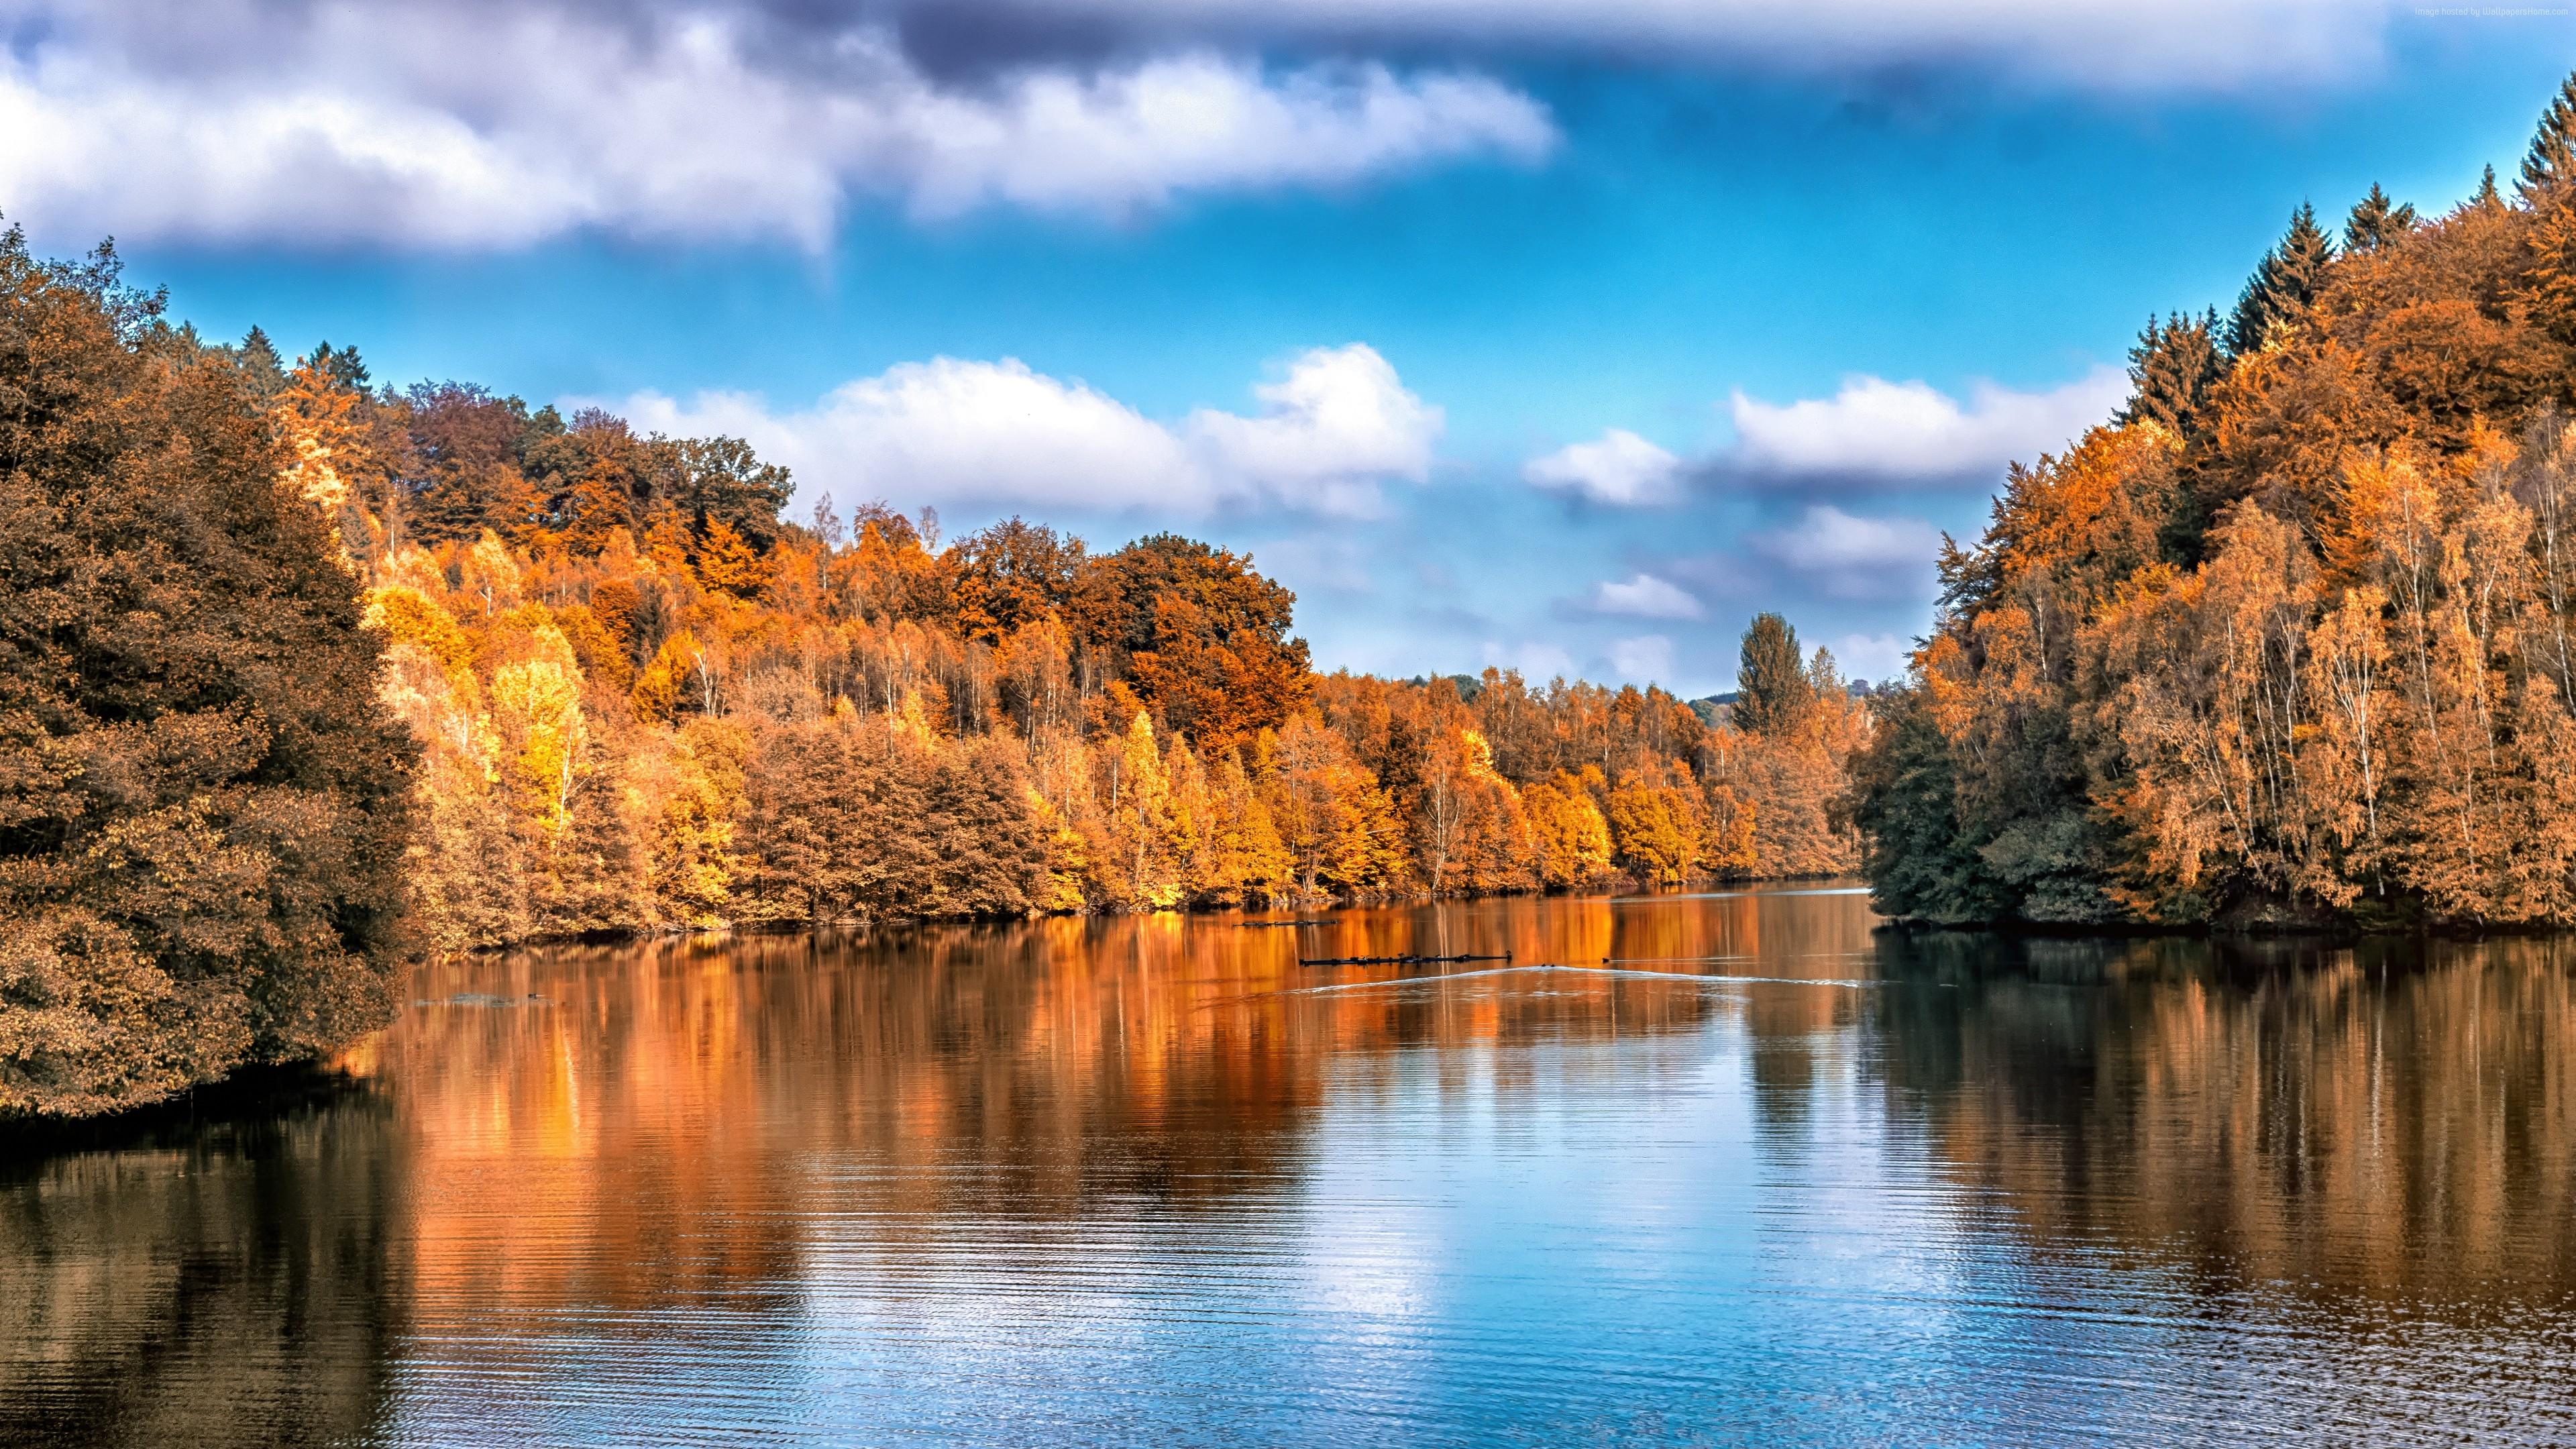 Wallpaper Autumn, lake, forest, 5k, Nature